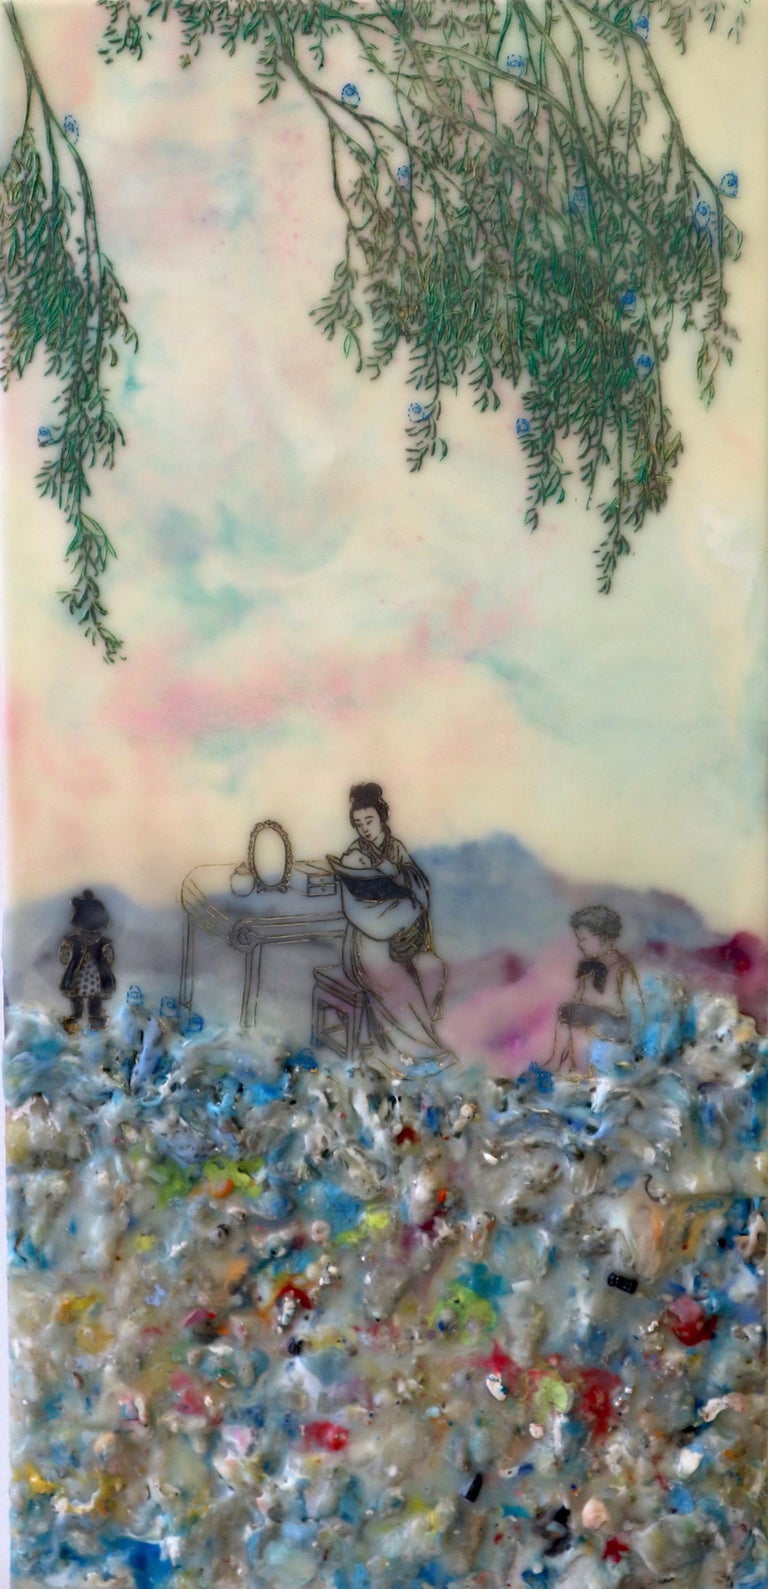 Cecile Chong Figurative Painting - Competing Interests, Encaustic Landscape, Mother and Children in Pink and Blue